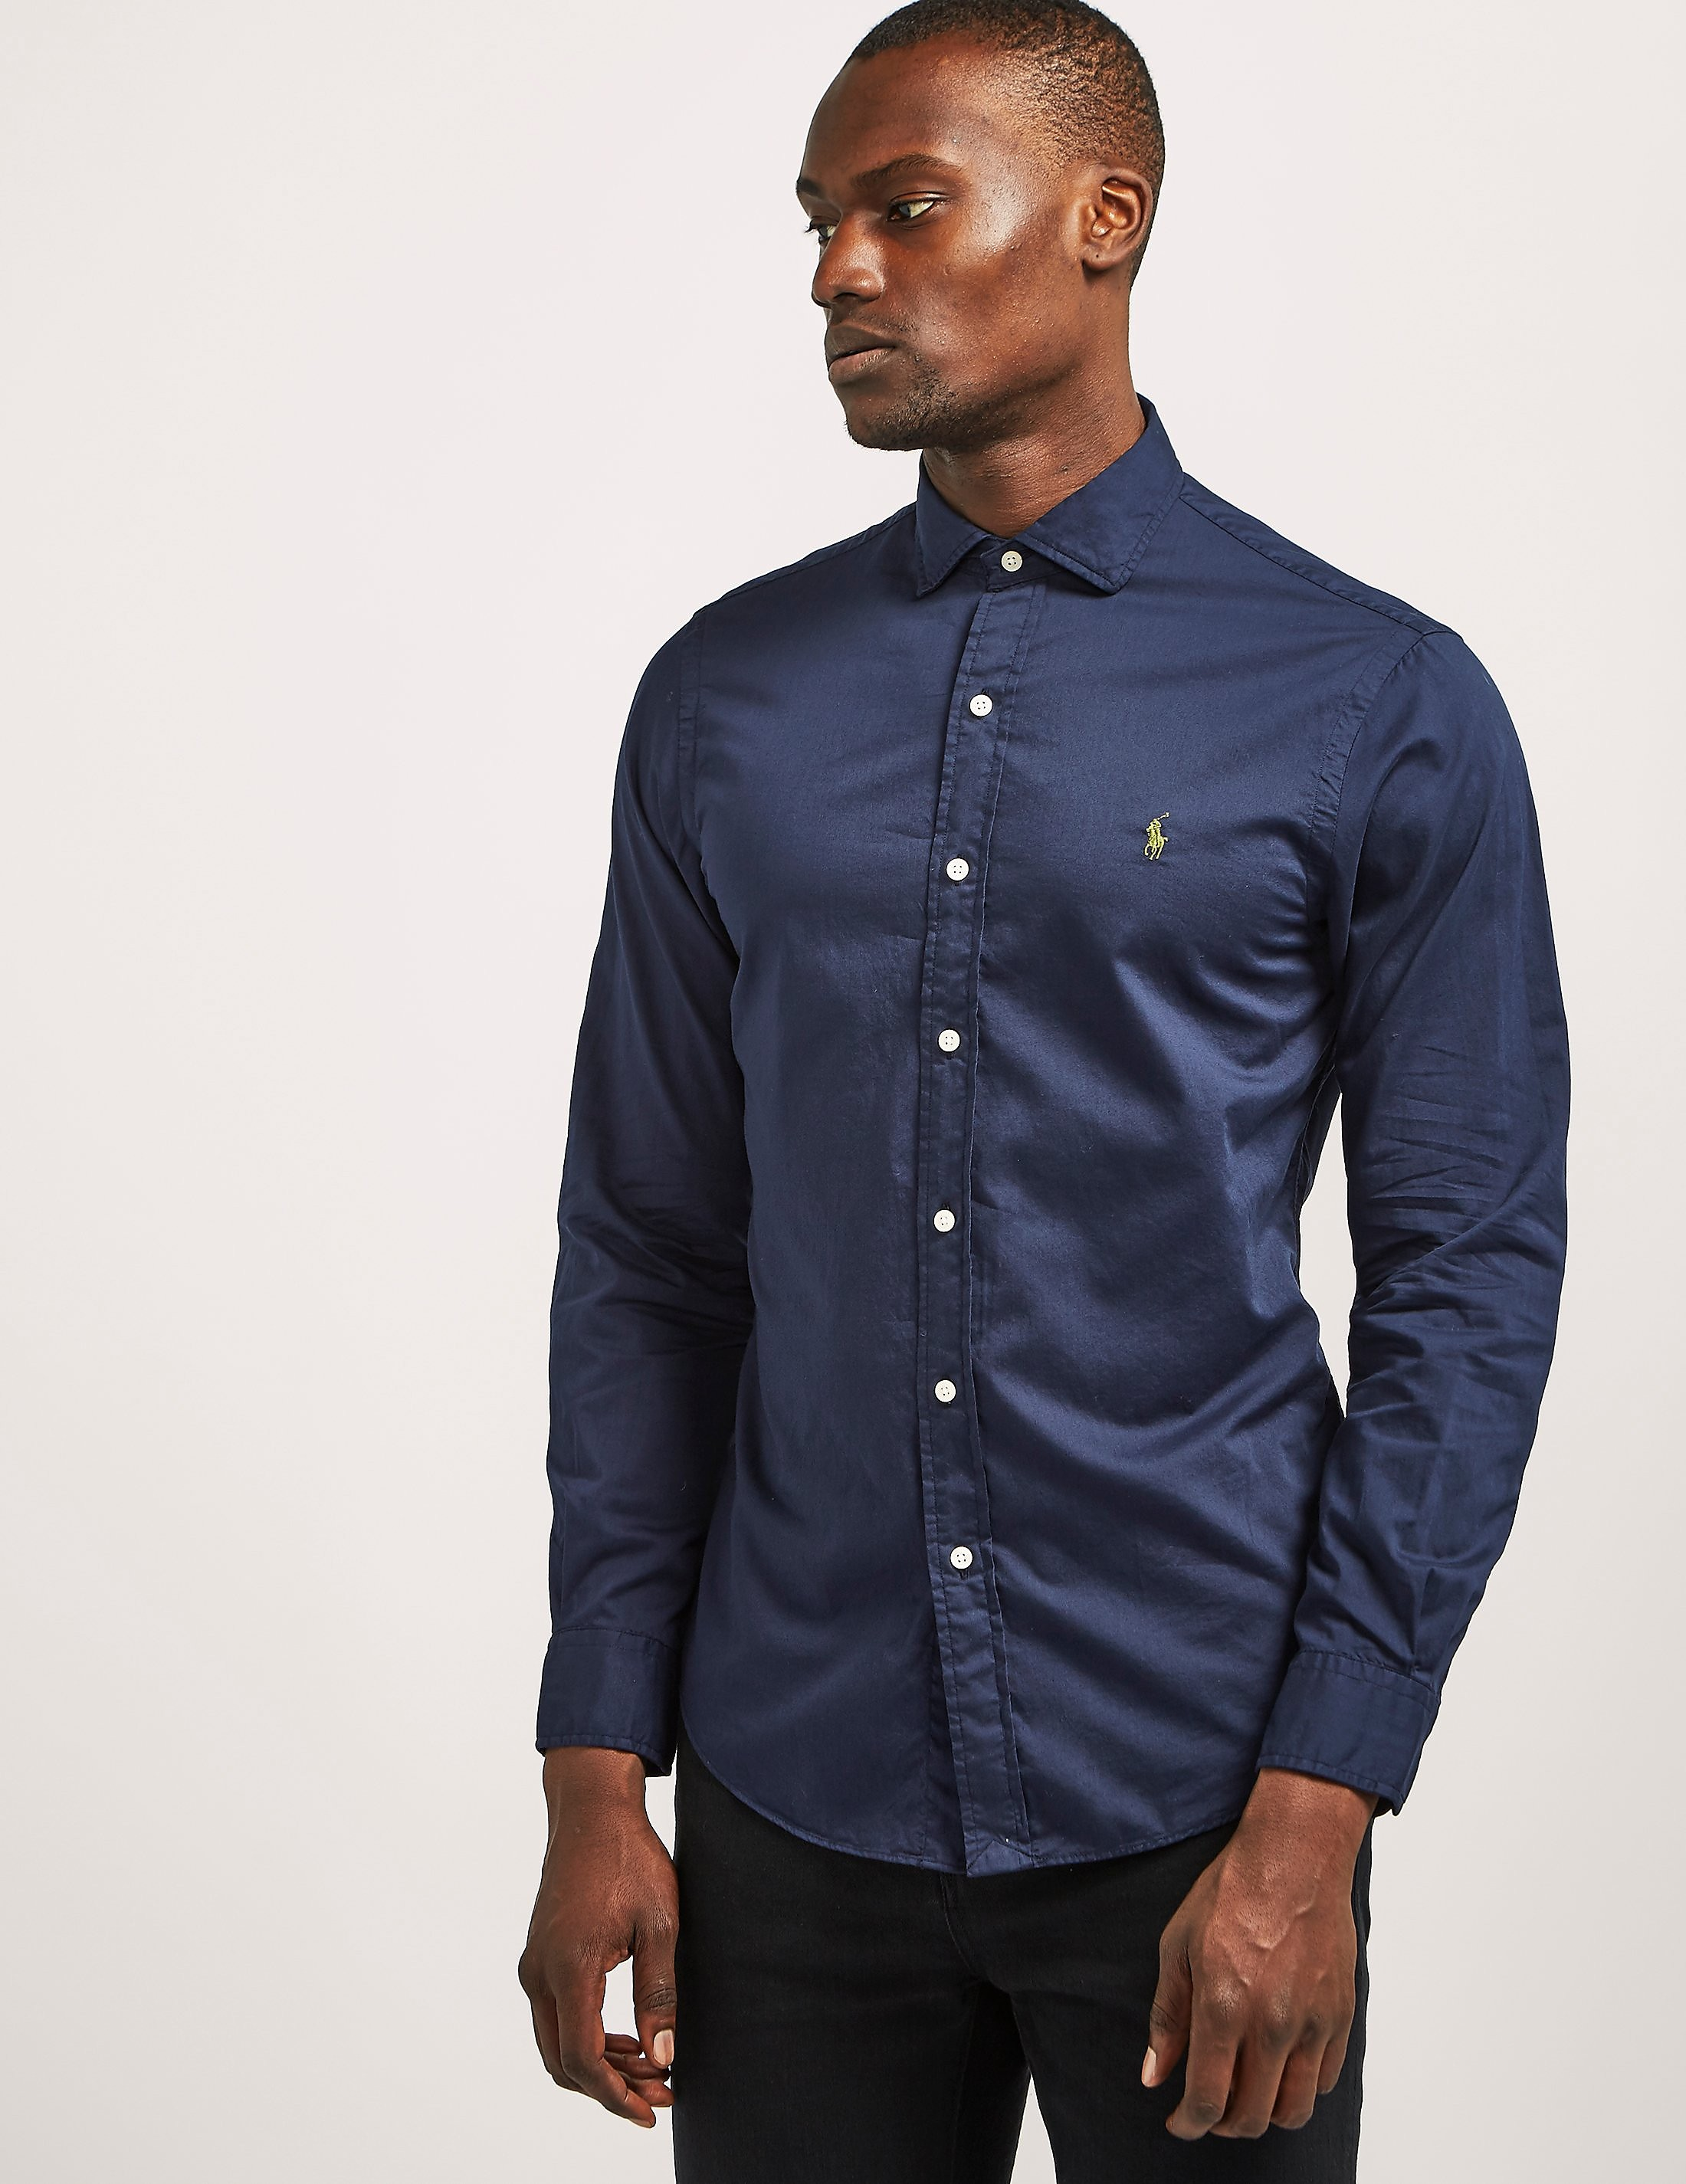 Polo Ralph Lauren Cotton Twill Shirt